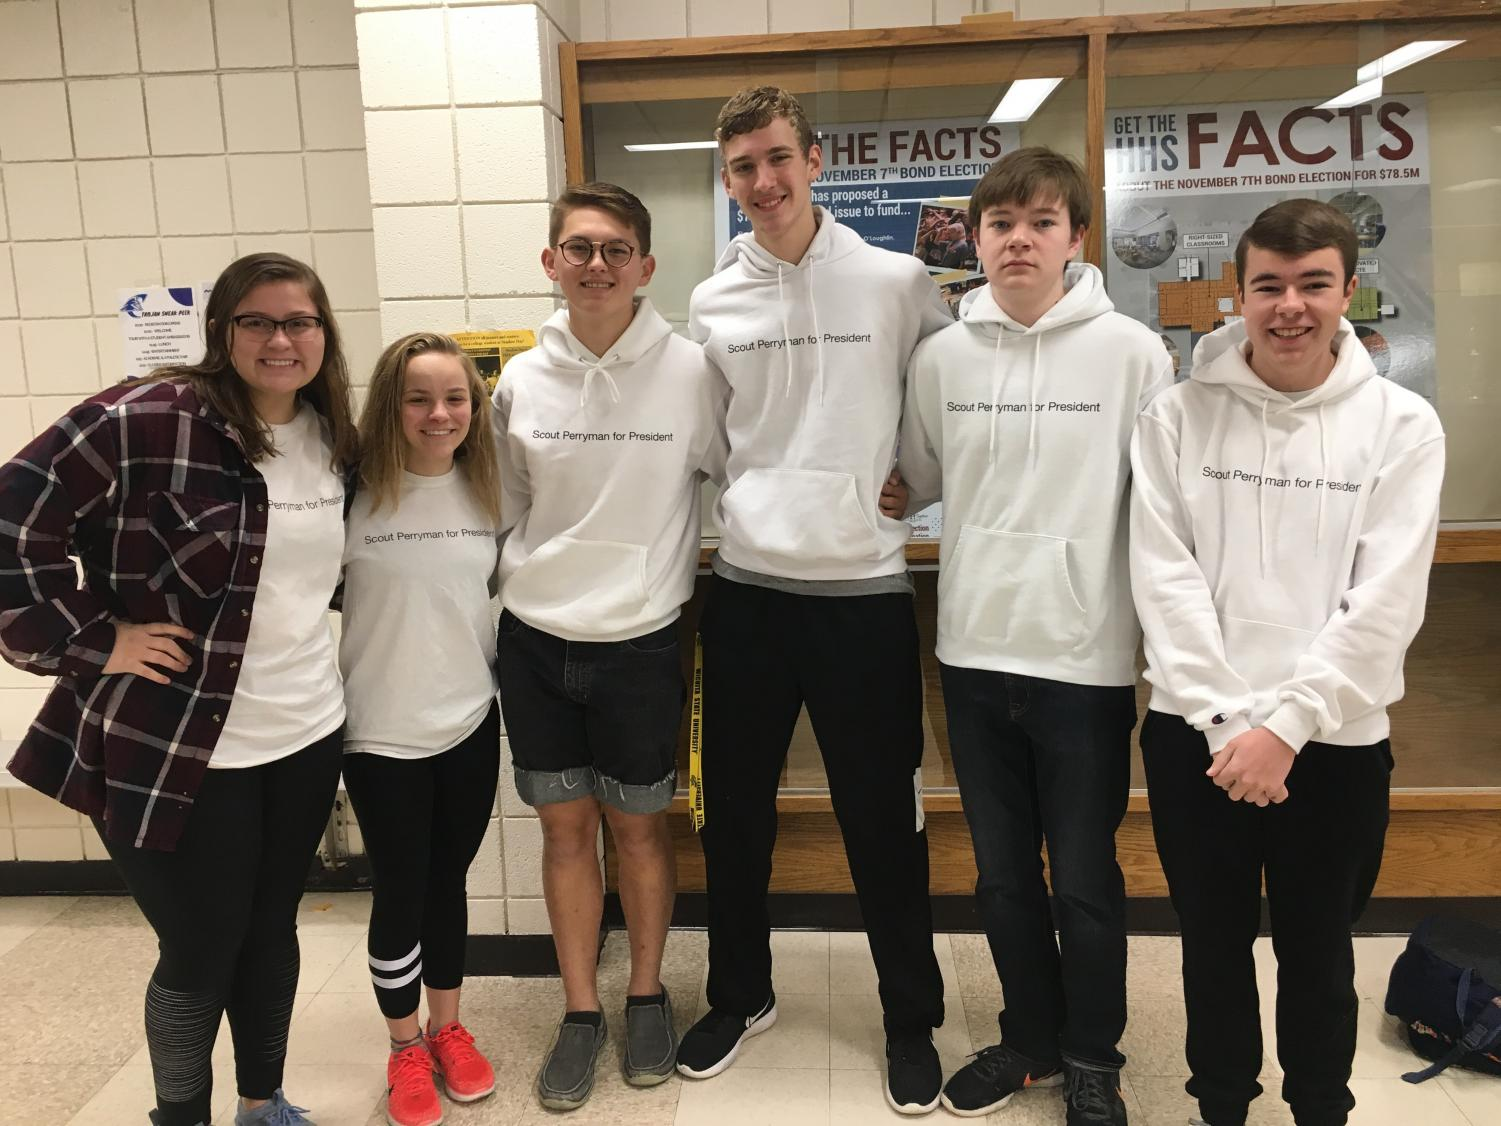 Juniors Shyann Schumacher, Isabelle Braun, Scout Perryman, Cade Swayne, Spencer Wittkorn and Cameron Karlin smile in their printed shirts and hoodies.